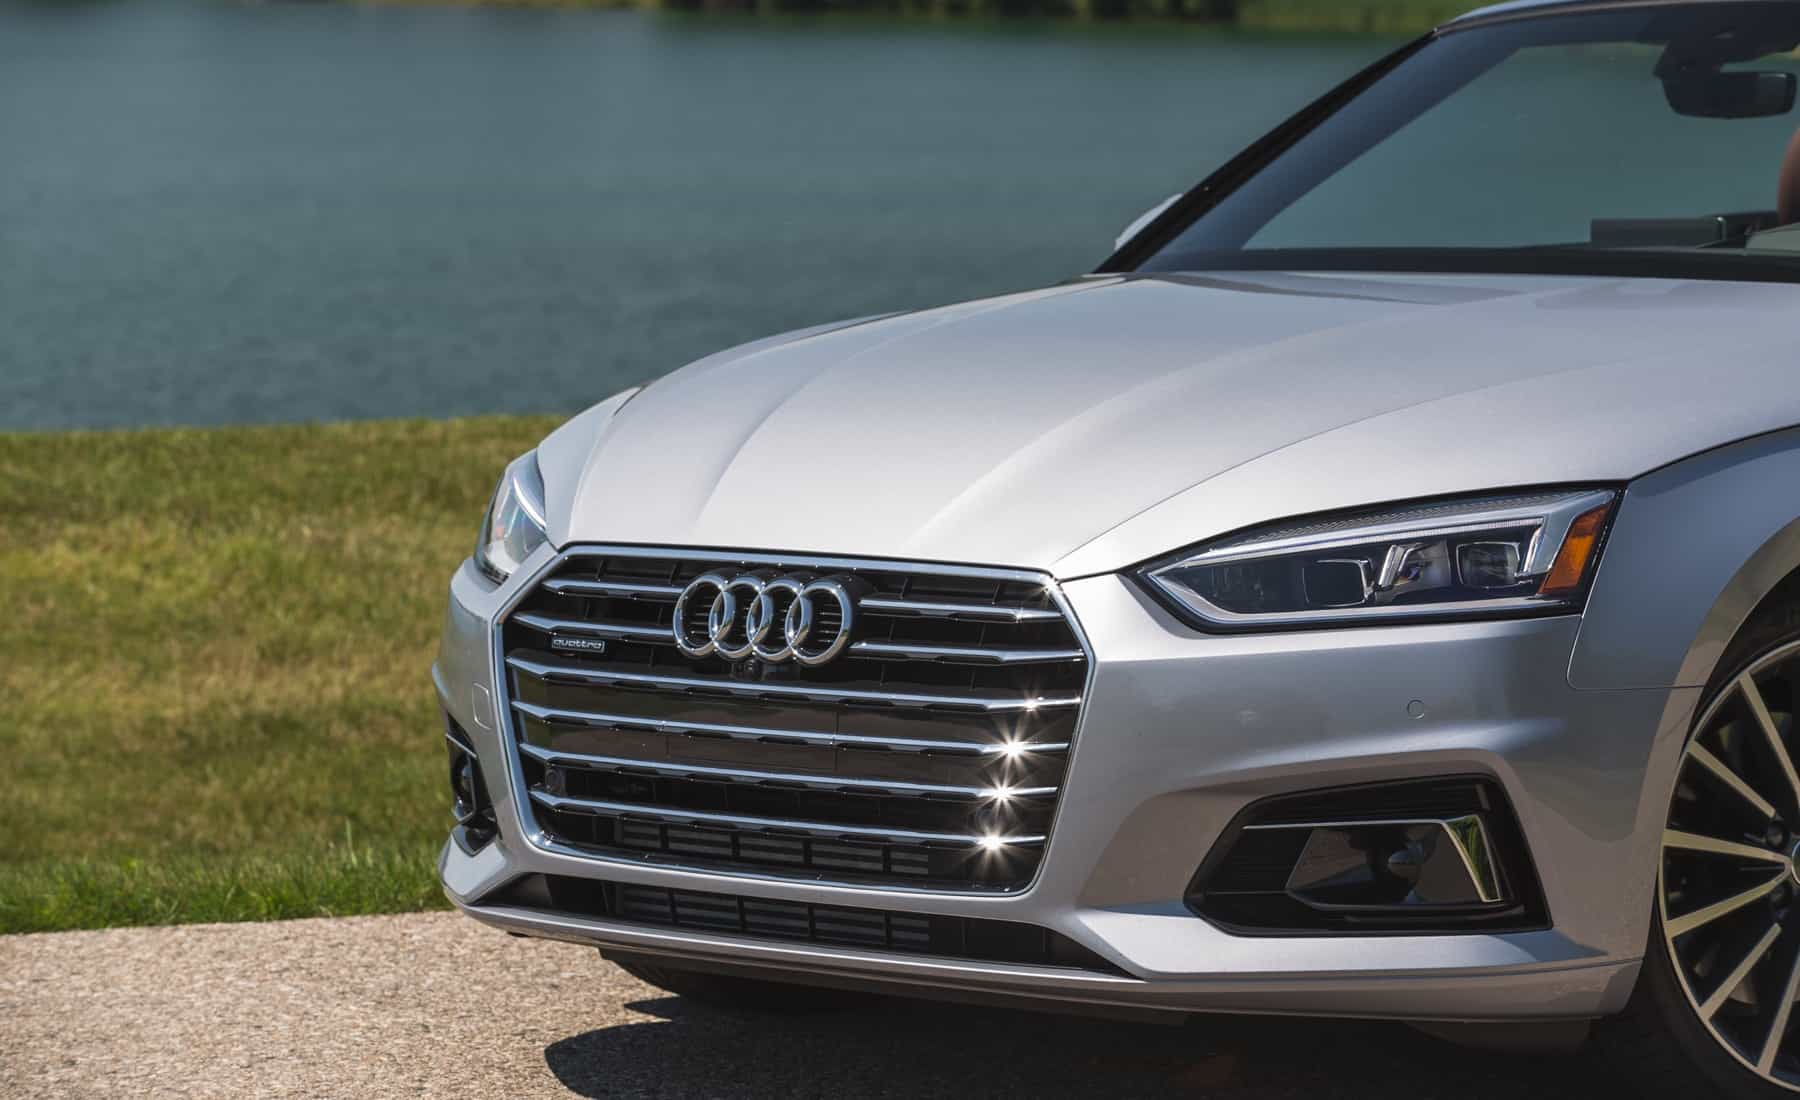 2018 Audi A5 Cabriolet Exterior View Grille (Photo 37 of 45)